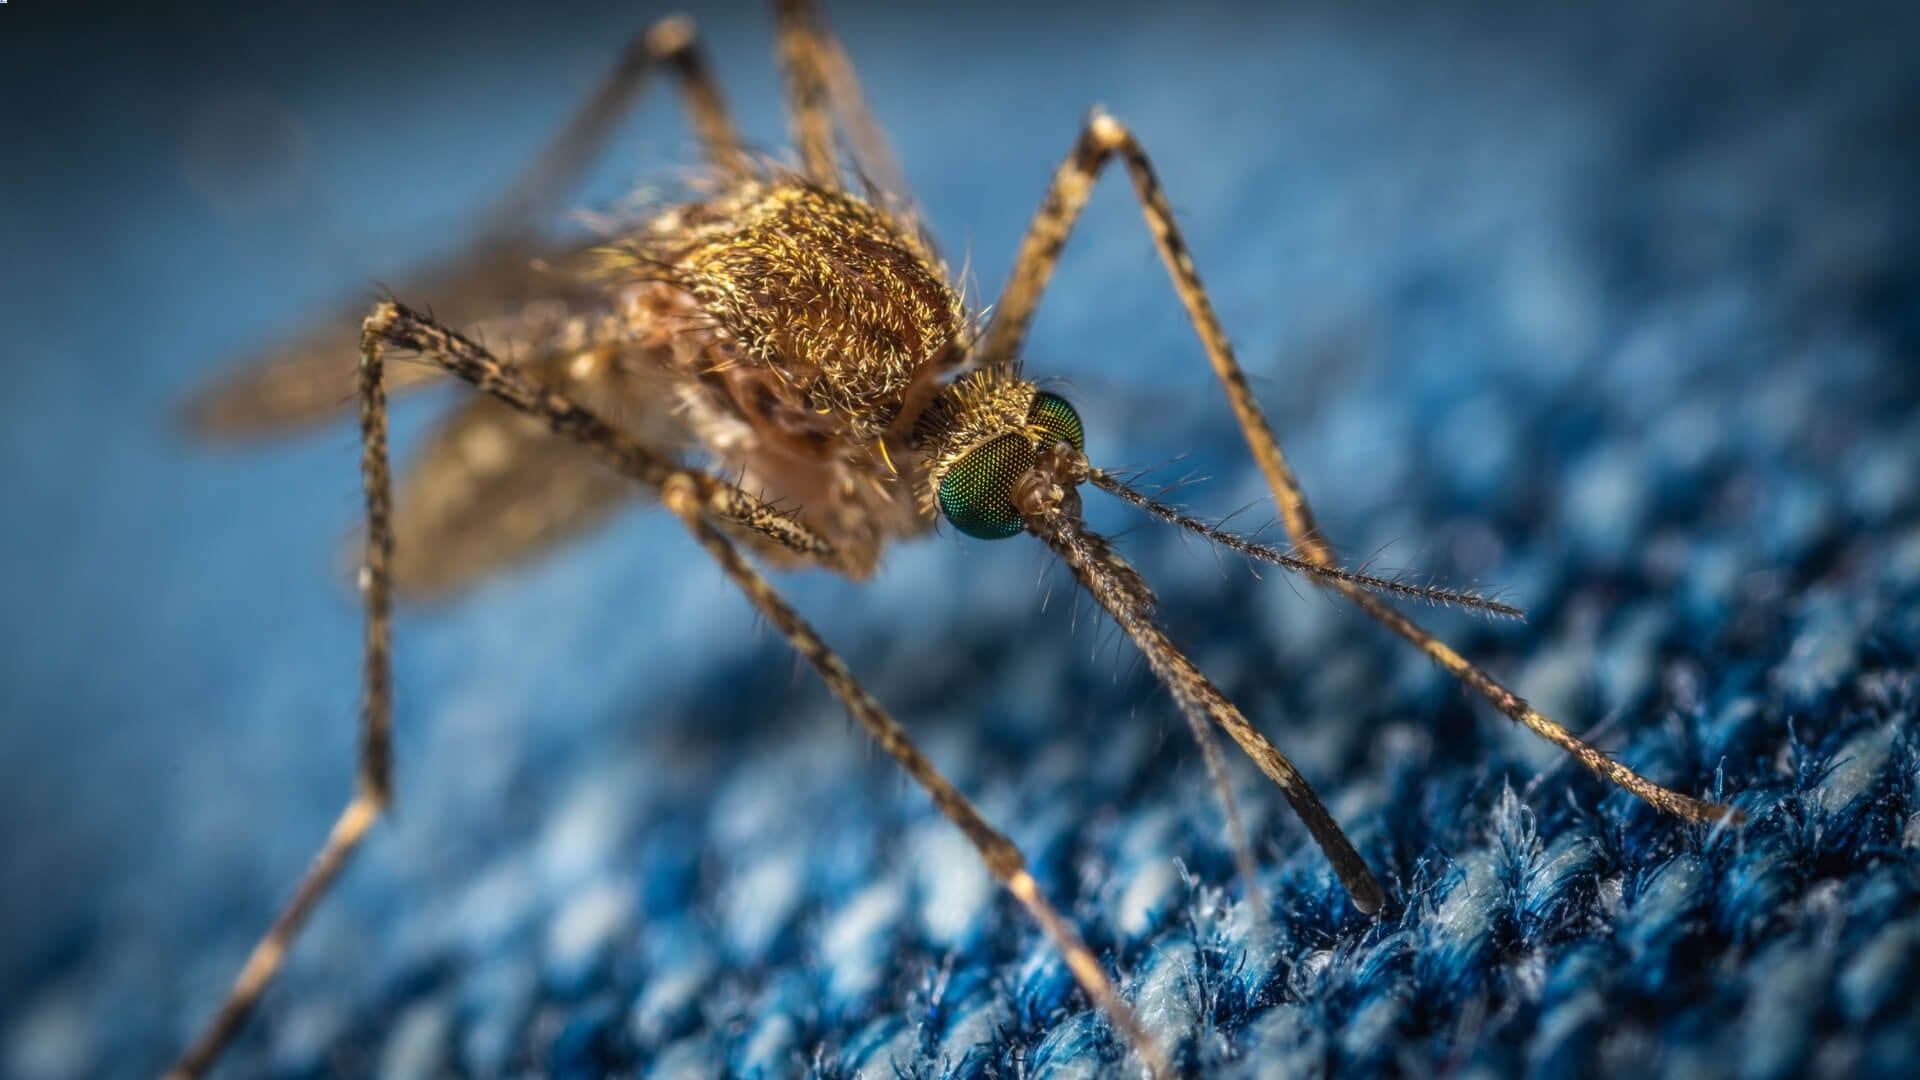 A mosquito is sticking its needle in a blue print.